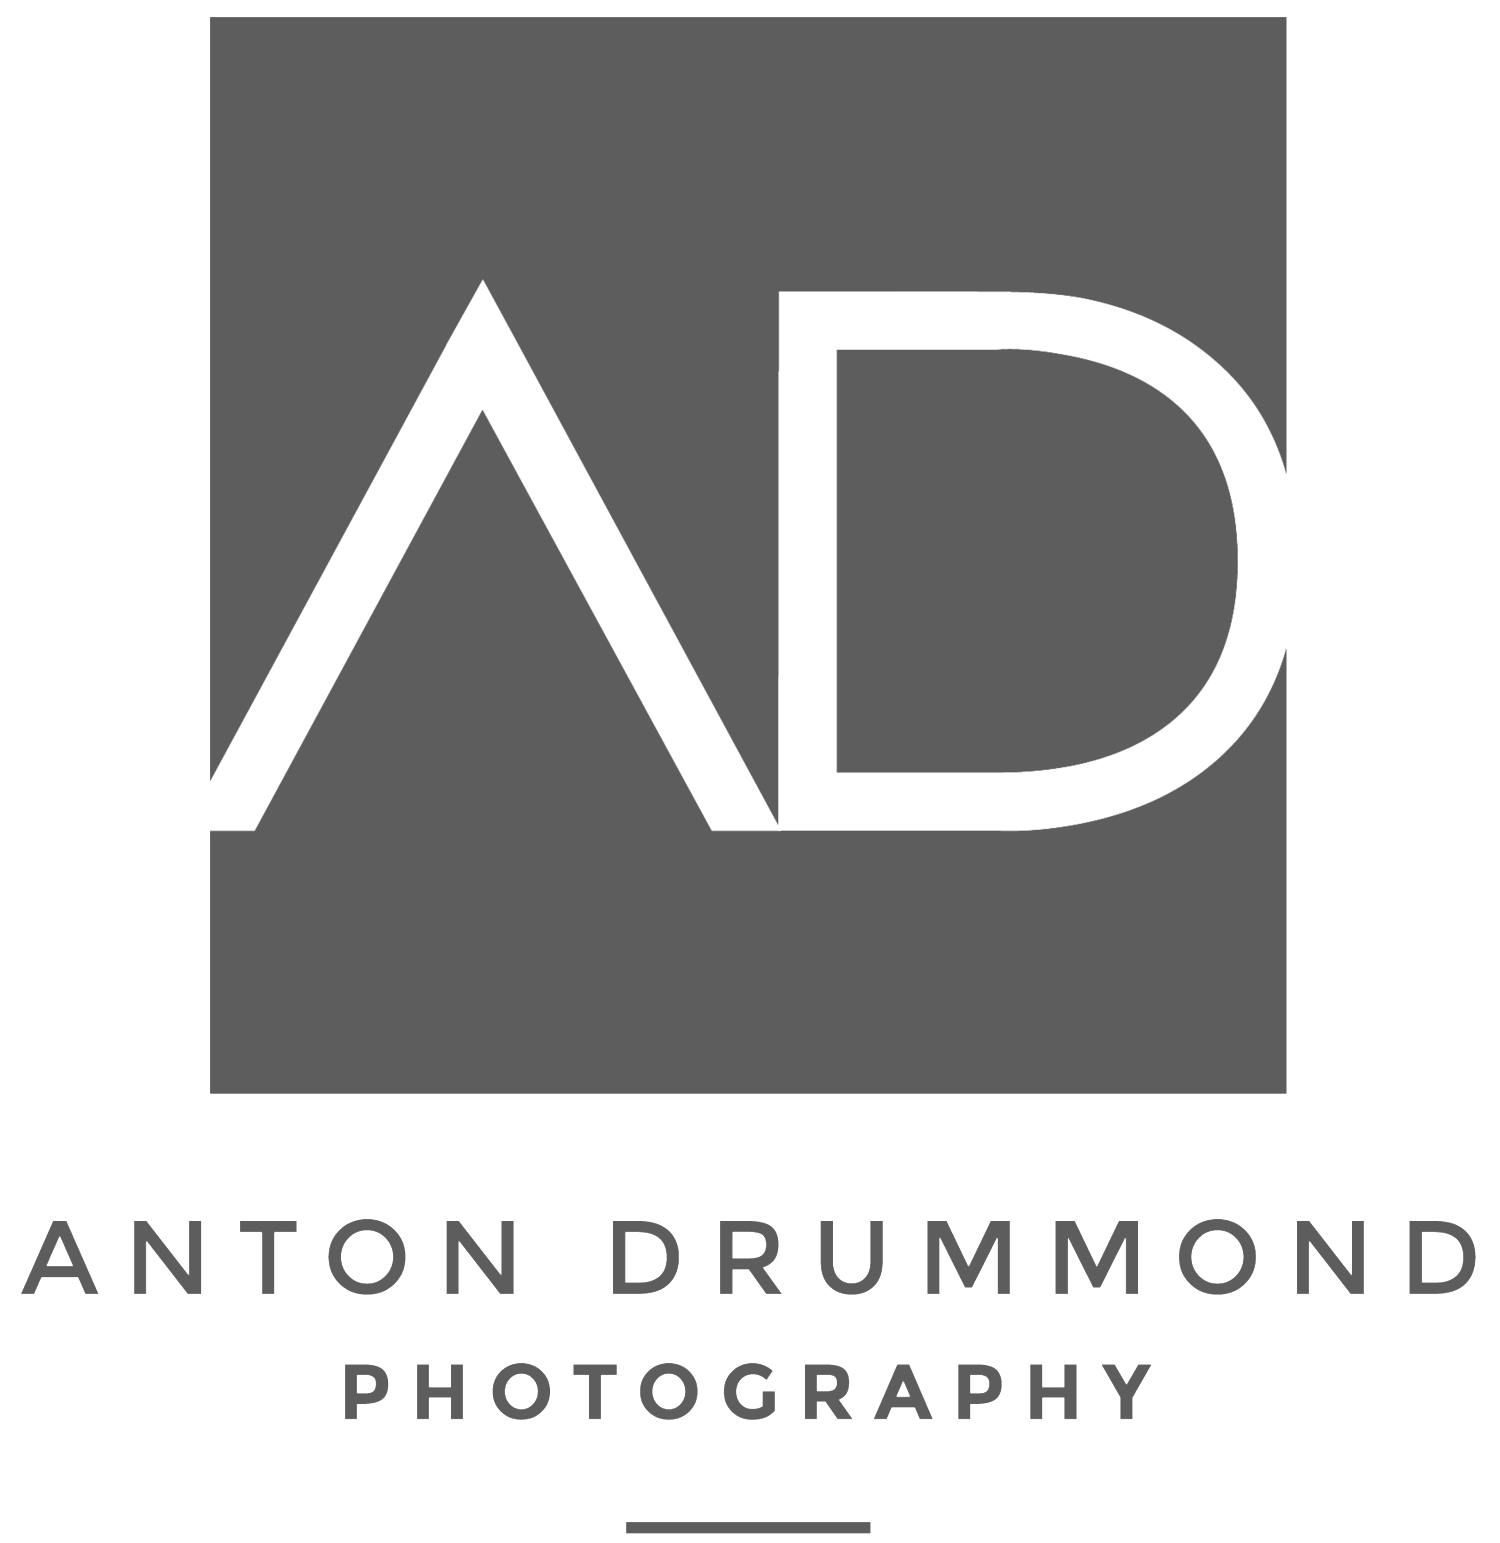 Philadelphia Wedding Photographer, Anton Drummond Photography